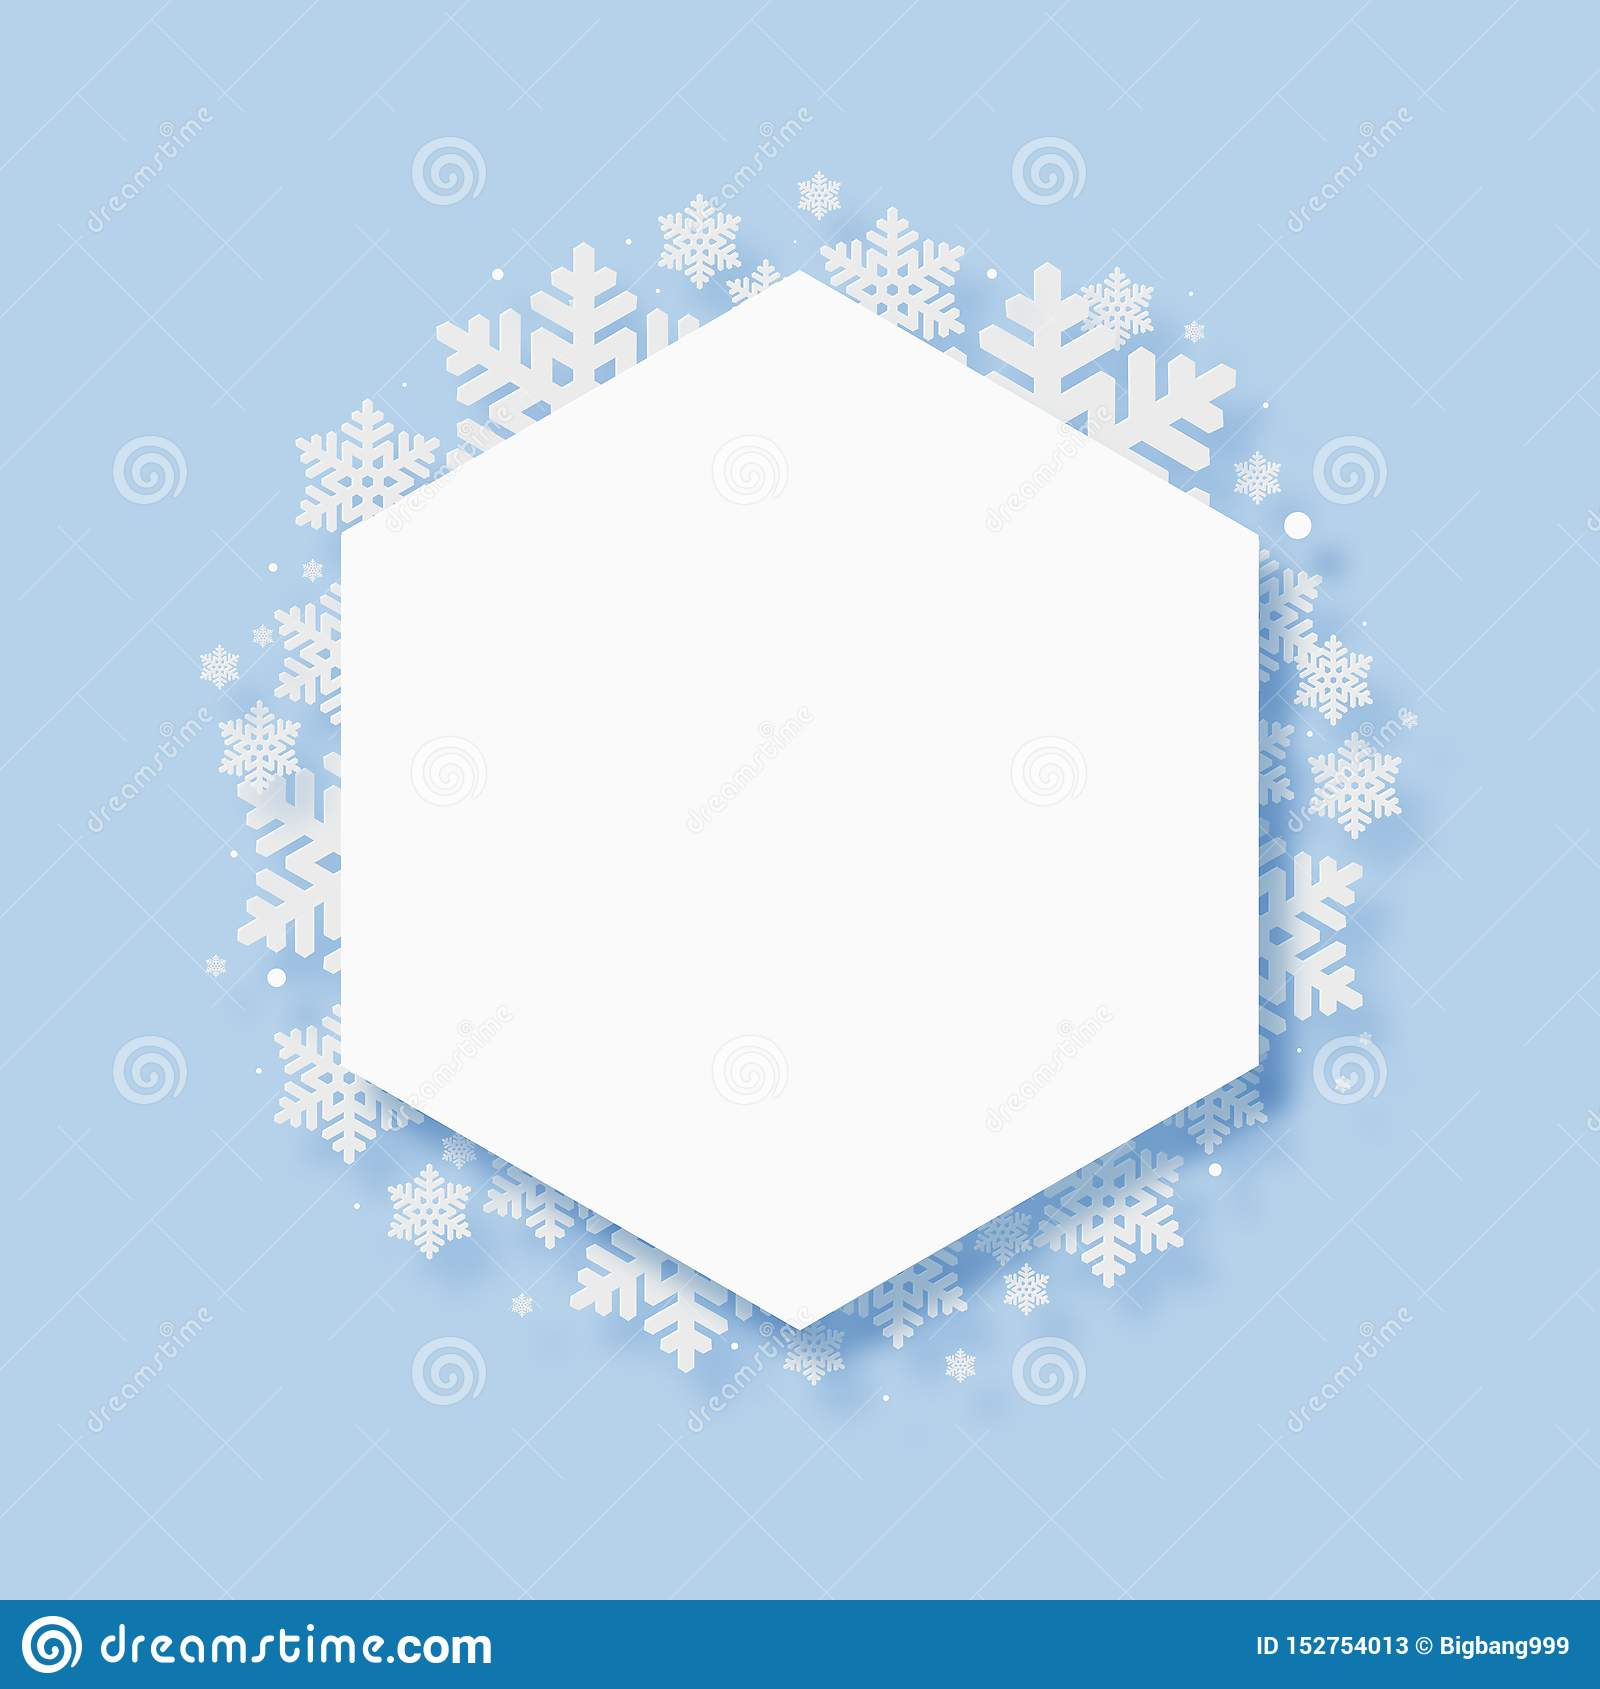 Christmas Paper Cutting Art Background